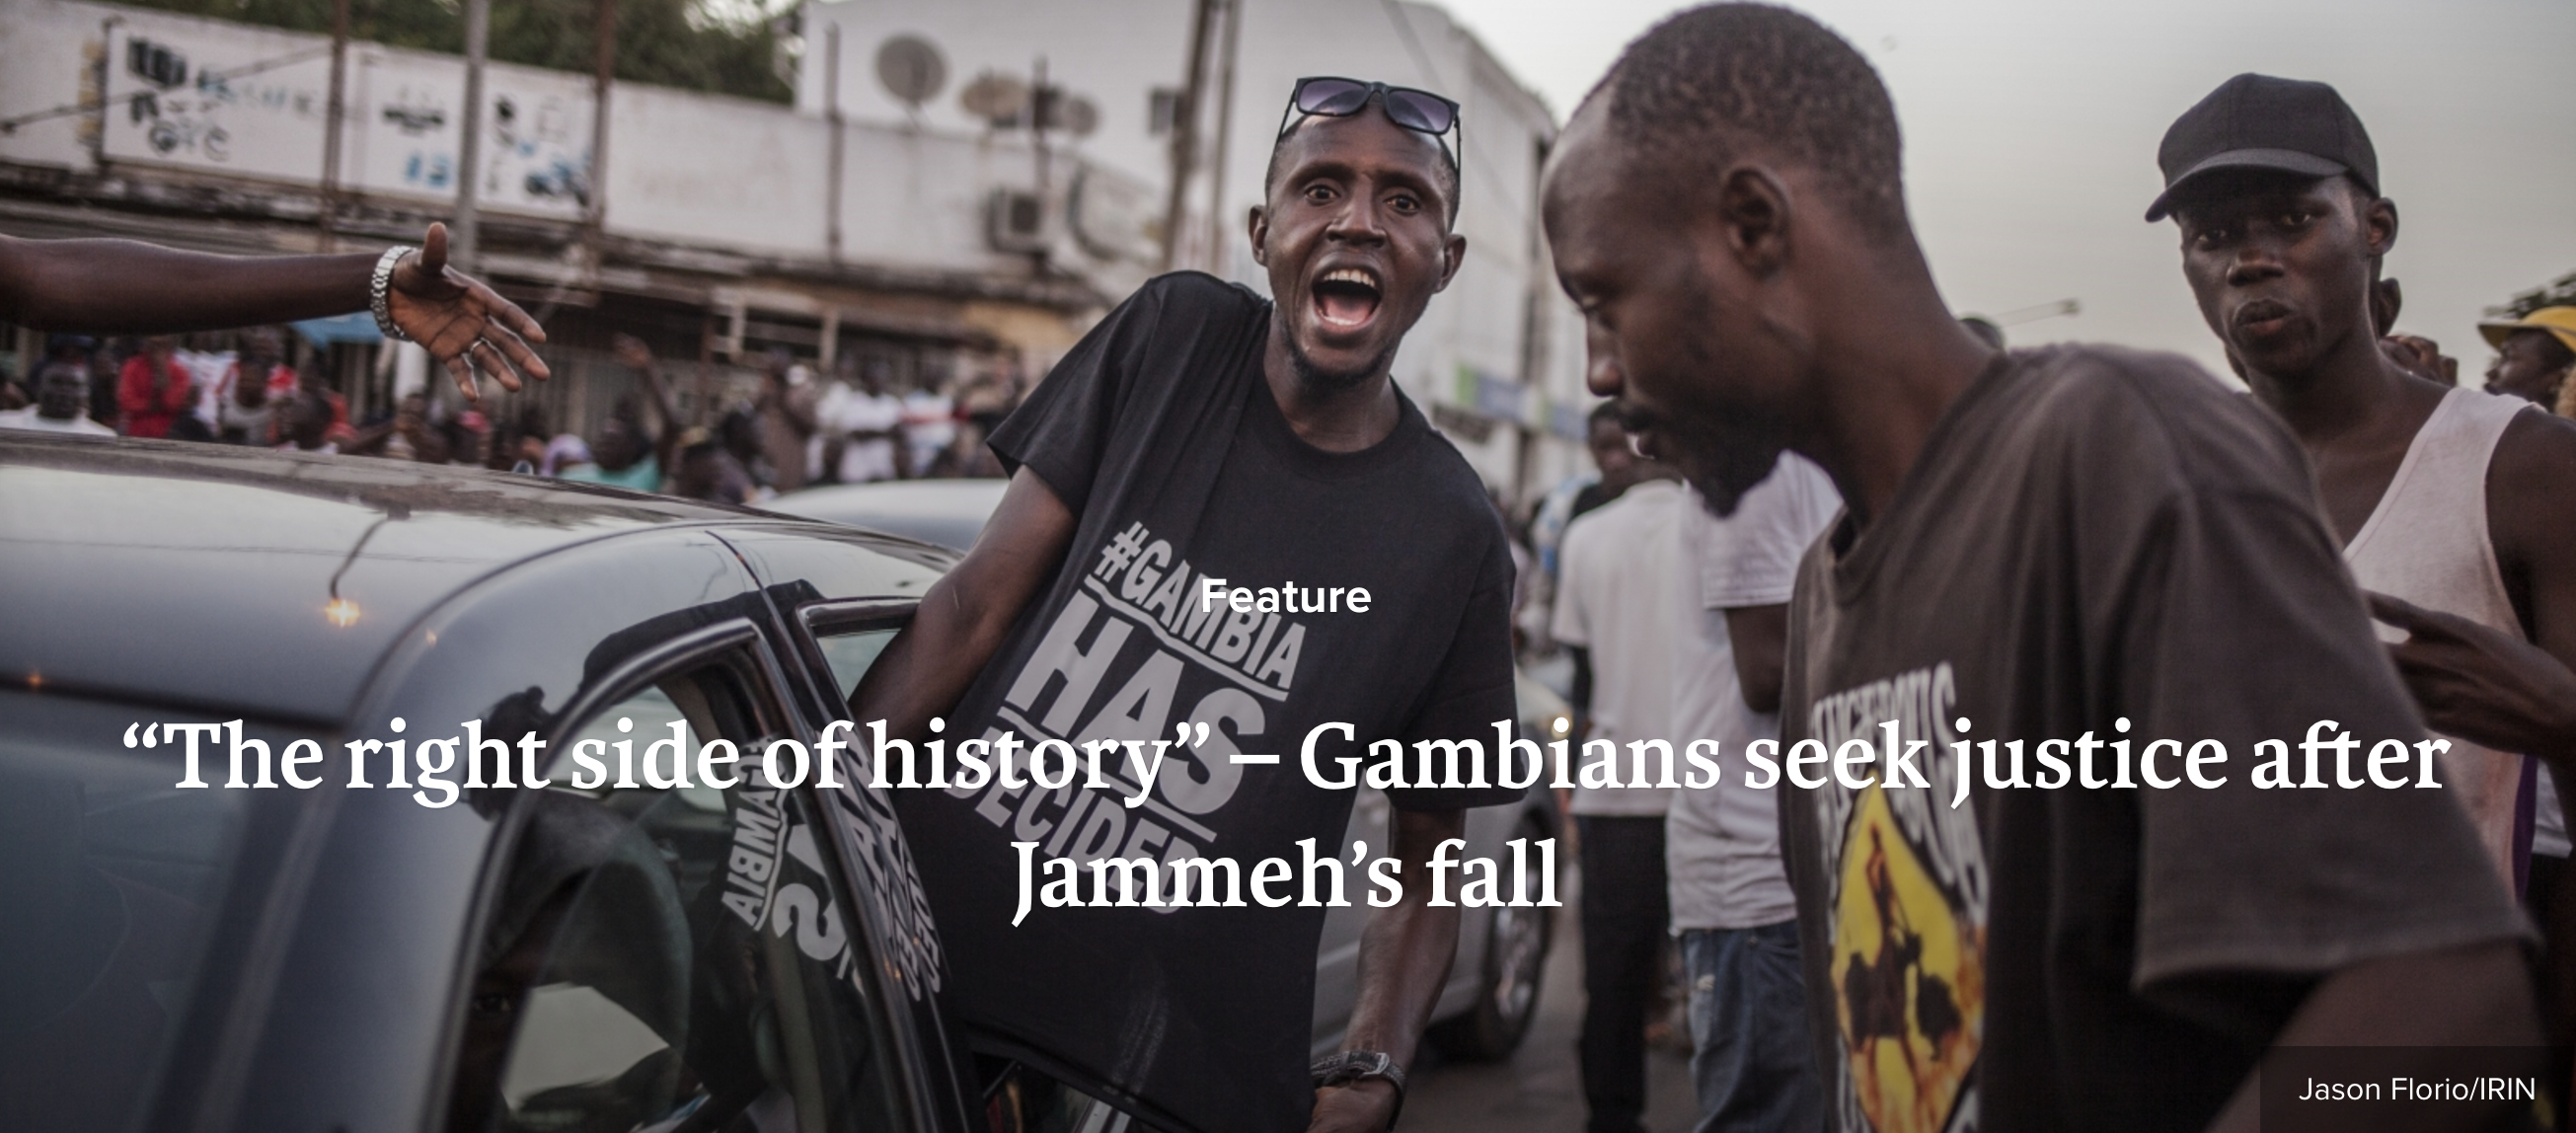 IRIN NEWS - tortured under Jammeh's rule, Gambian's seek justice - image © Jason Florio